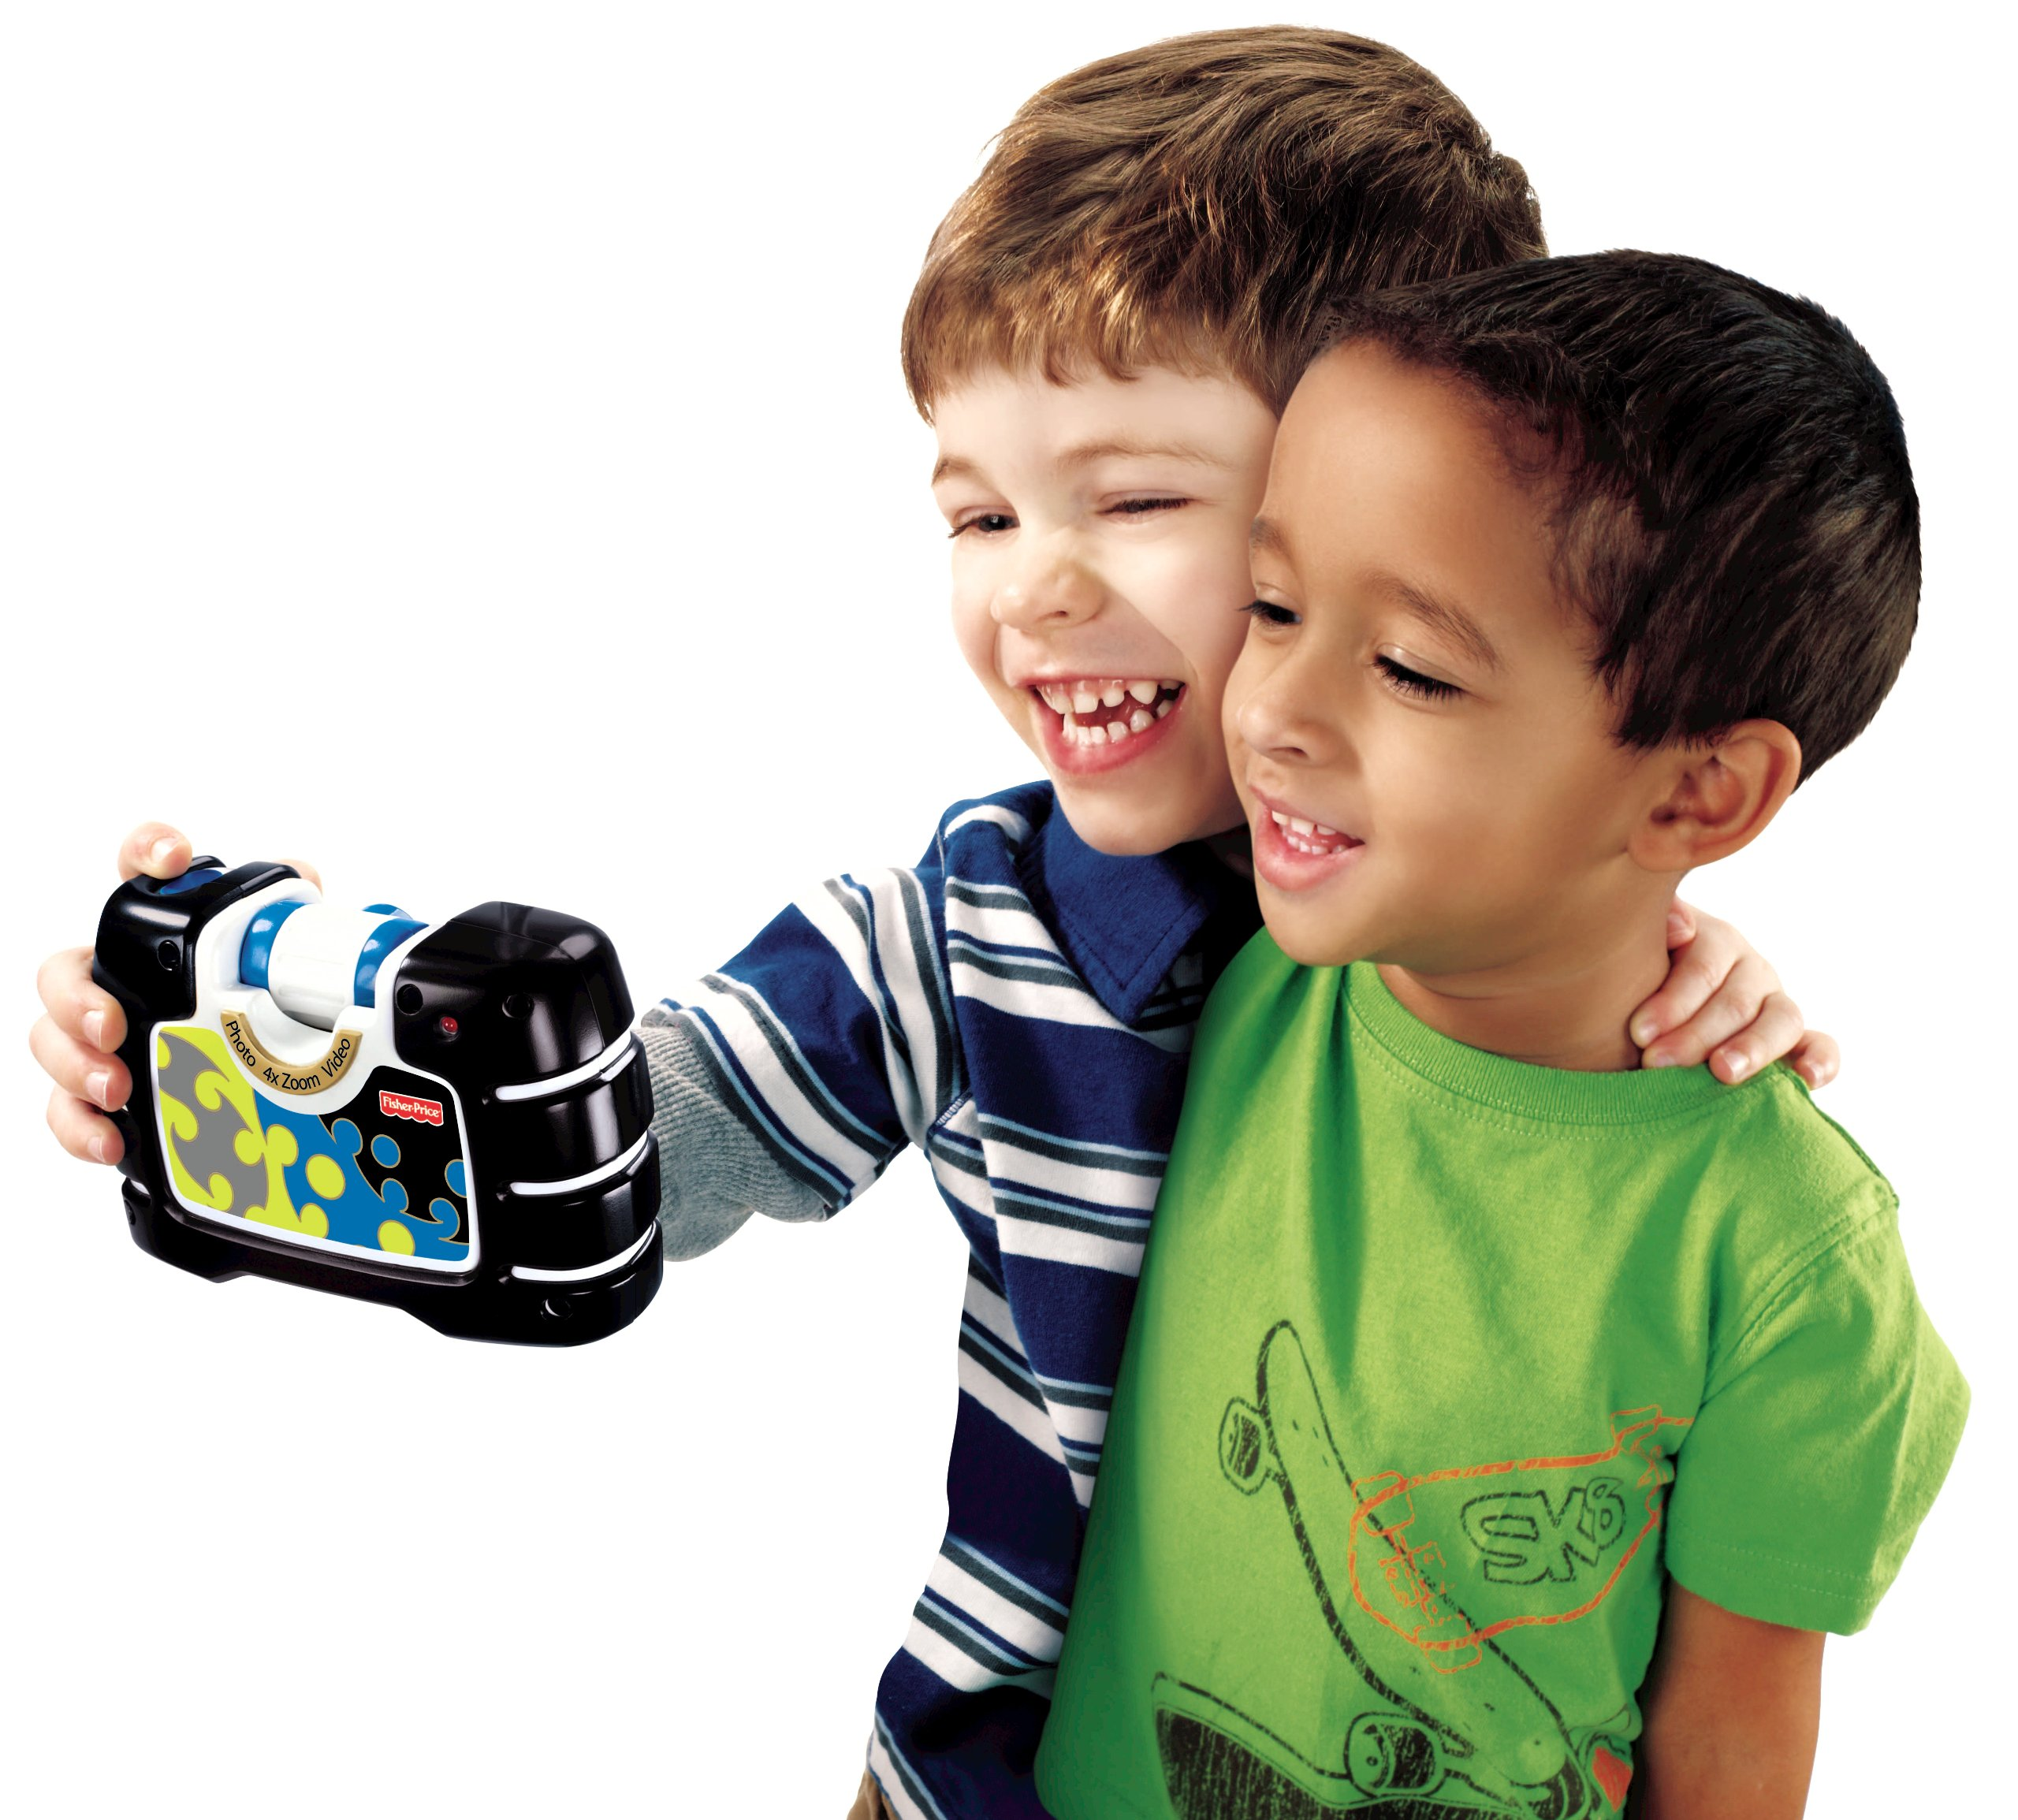 Fisher-Price Kid-Tough See Yourself Camera, Black by Fisher-Price (Image #4)